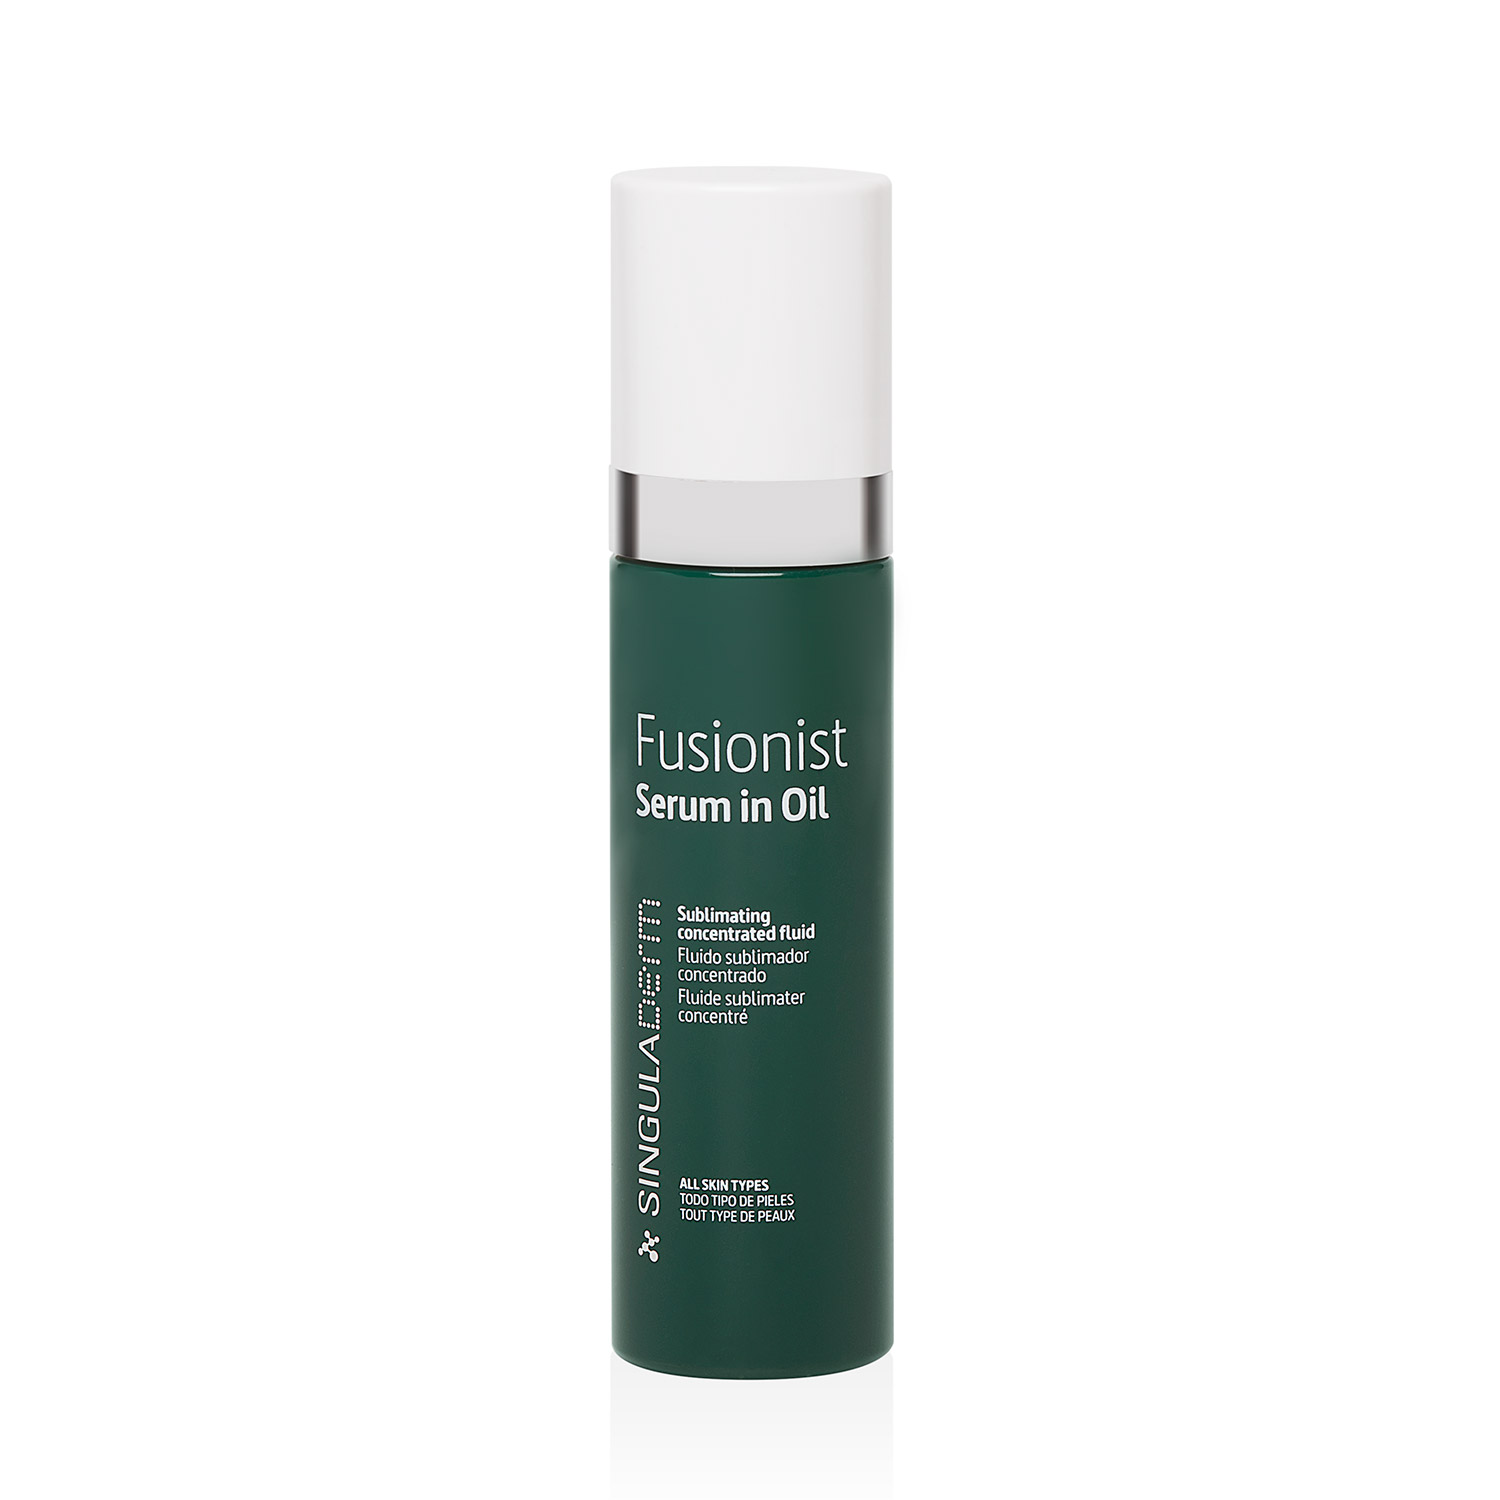 Fusionist Serum in Oil